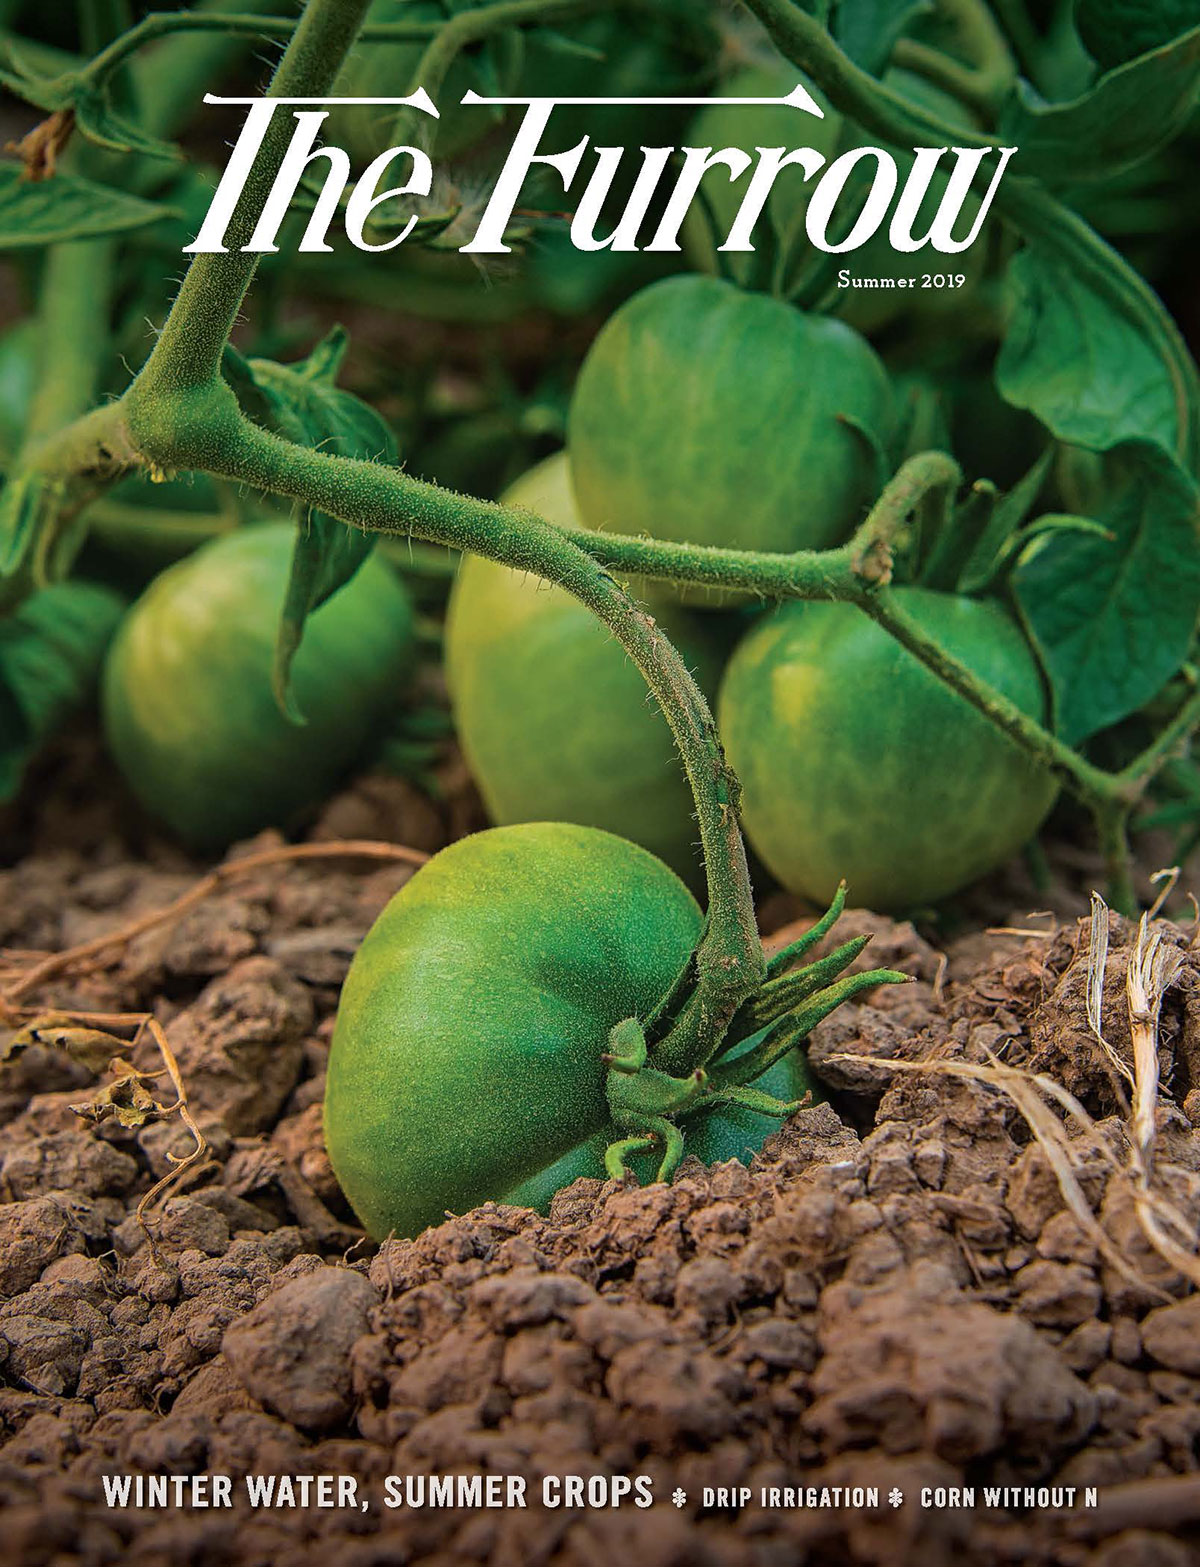 The Furrow - Summer 2019 Issue